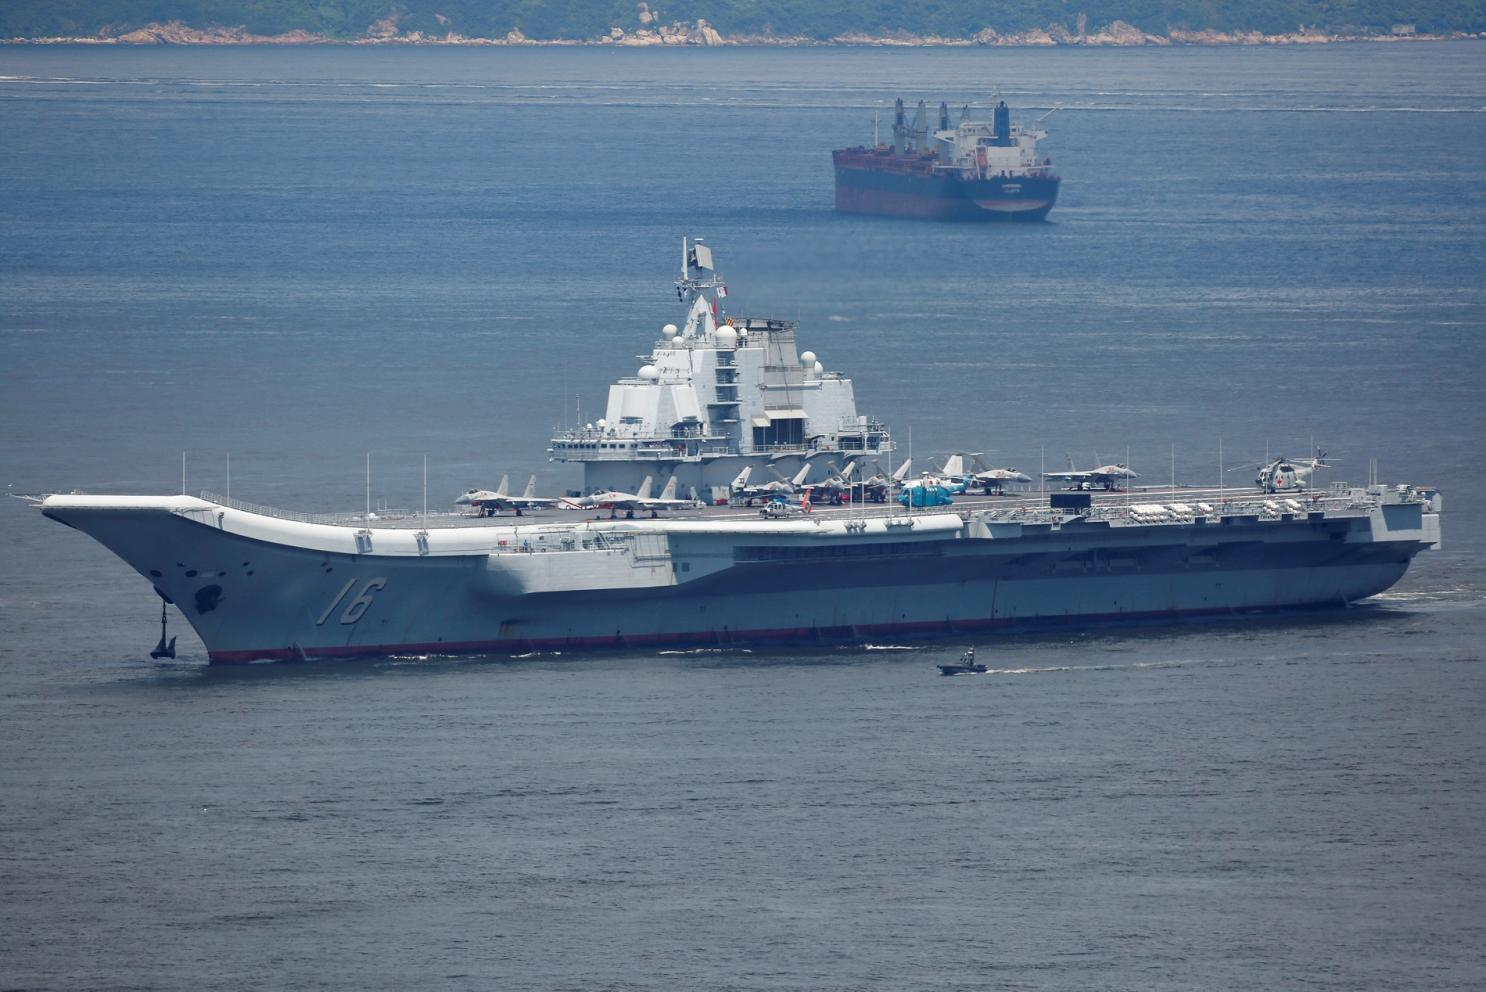 China plans to sell Pakistan an aircraft carrier